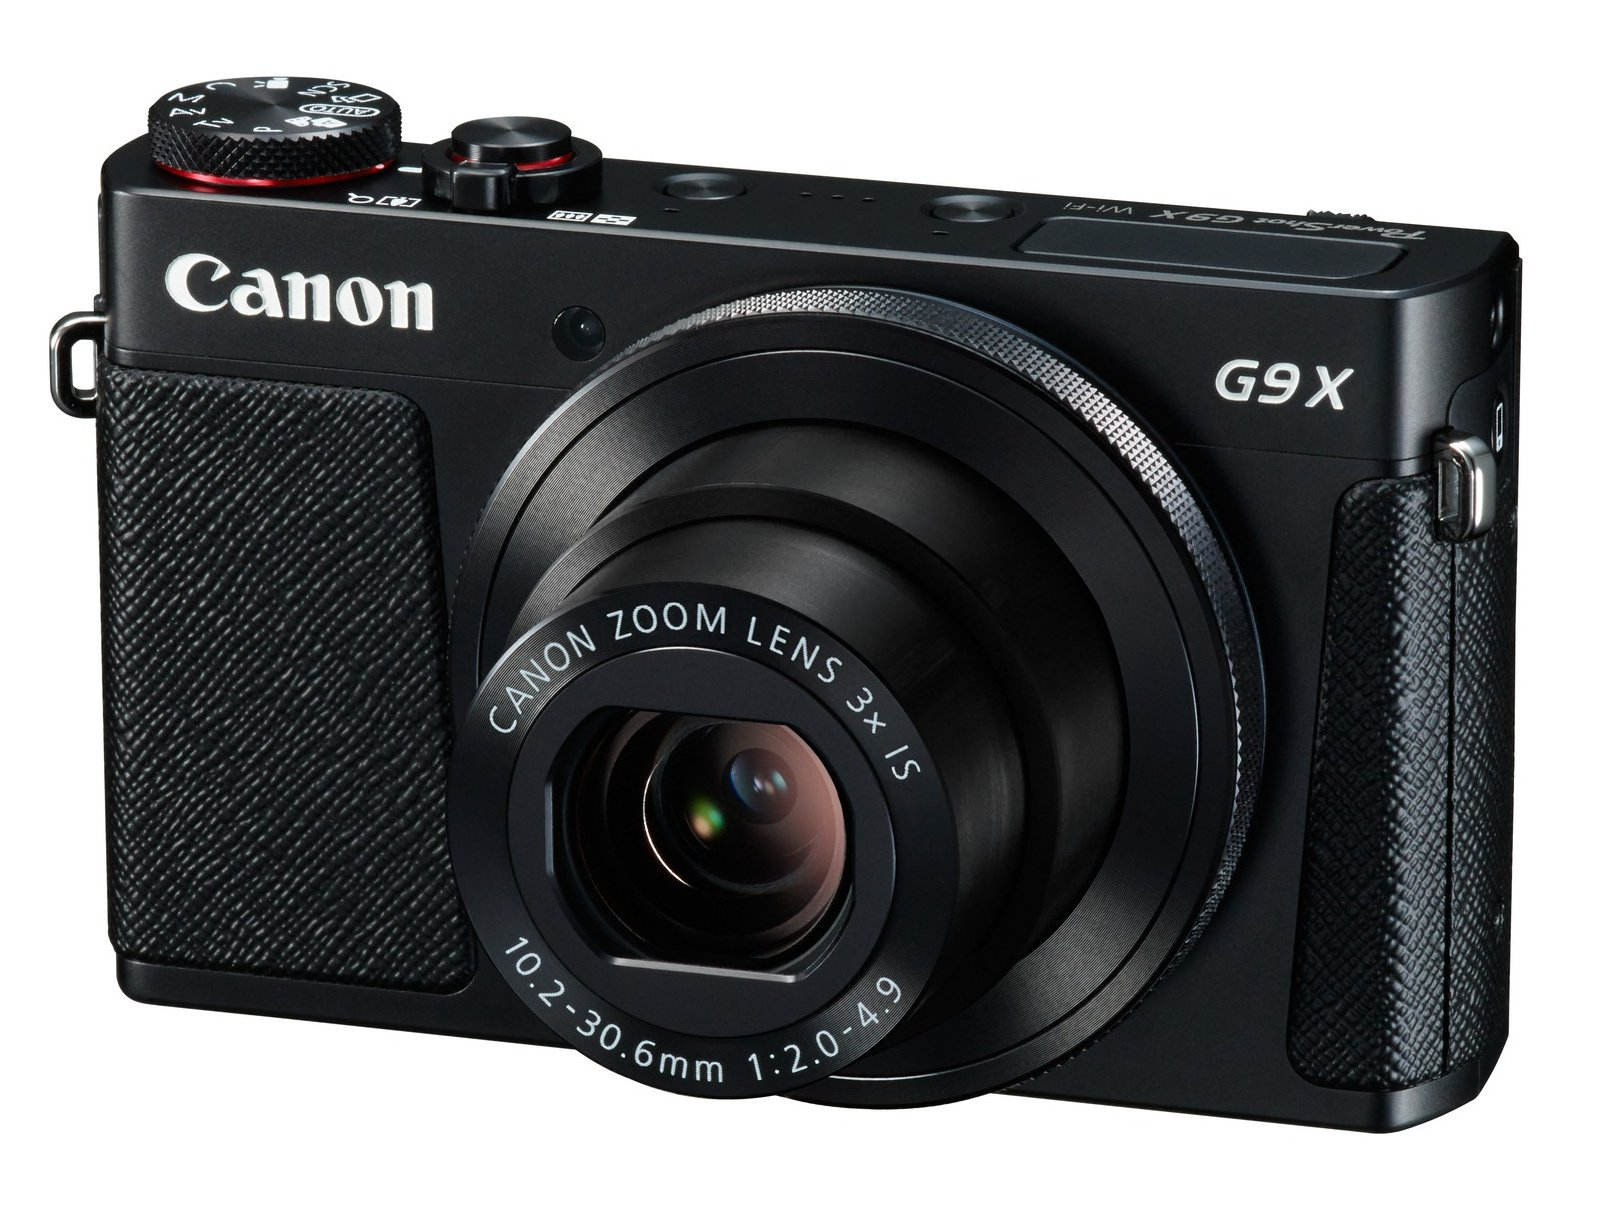 20.1MP Compact Camera in Black or Silver